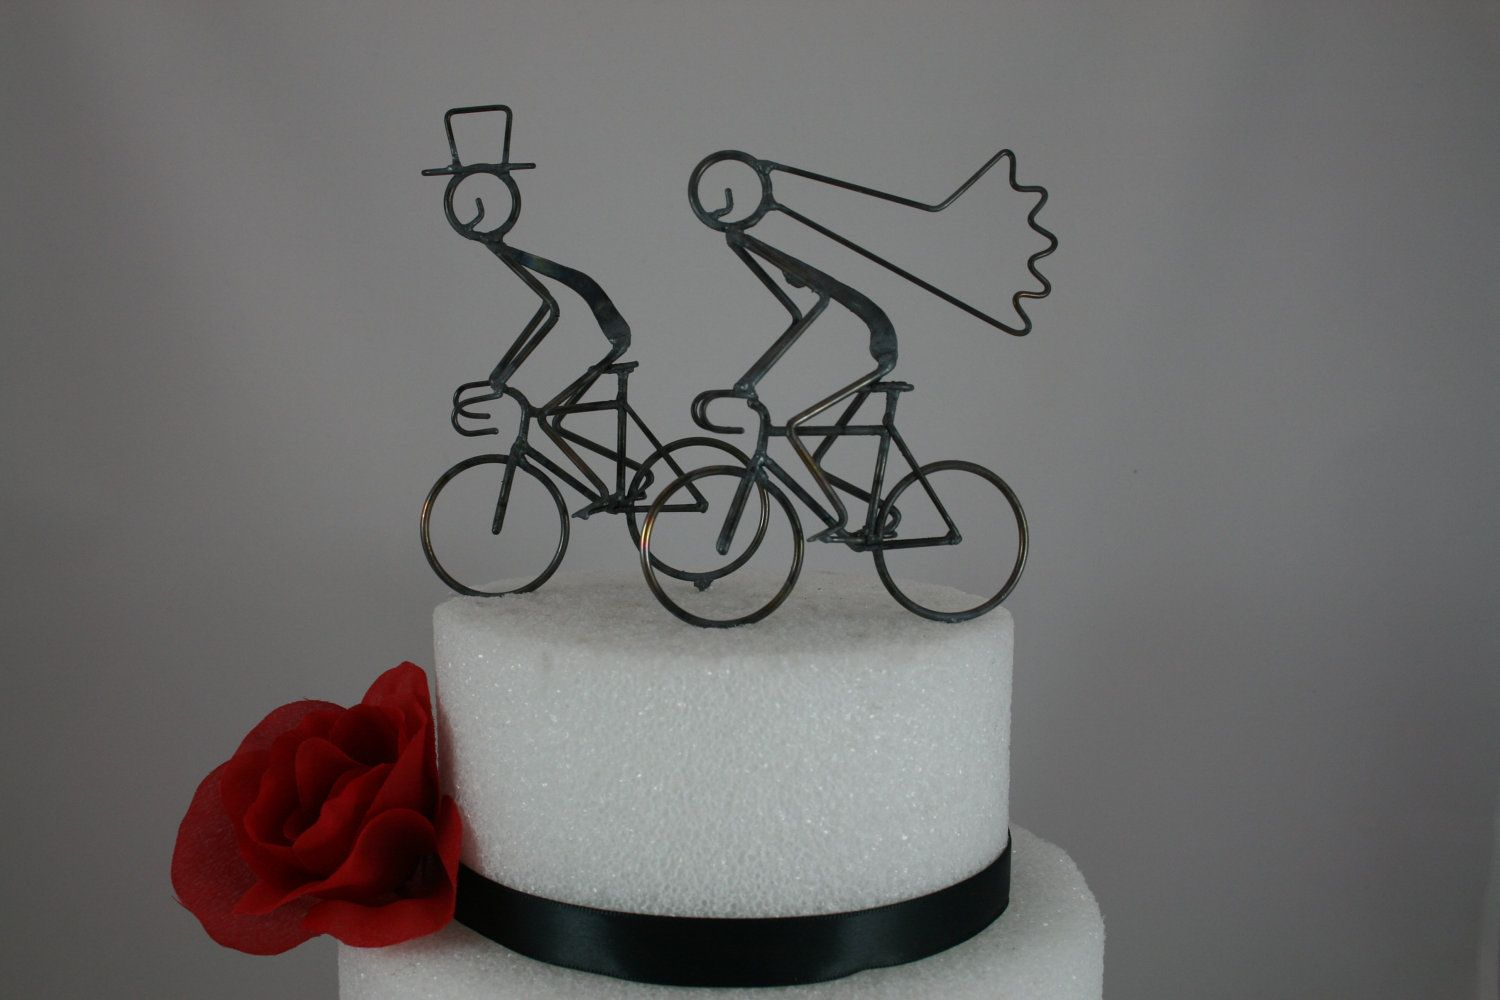 Bride and Groom Road Bike Cake Toppers